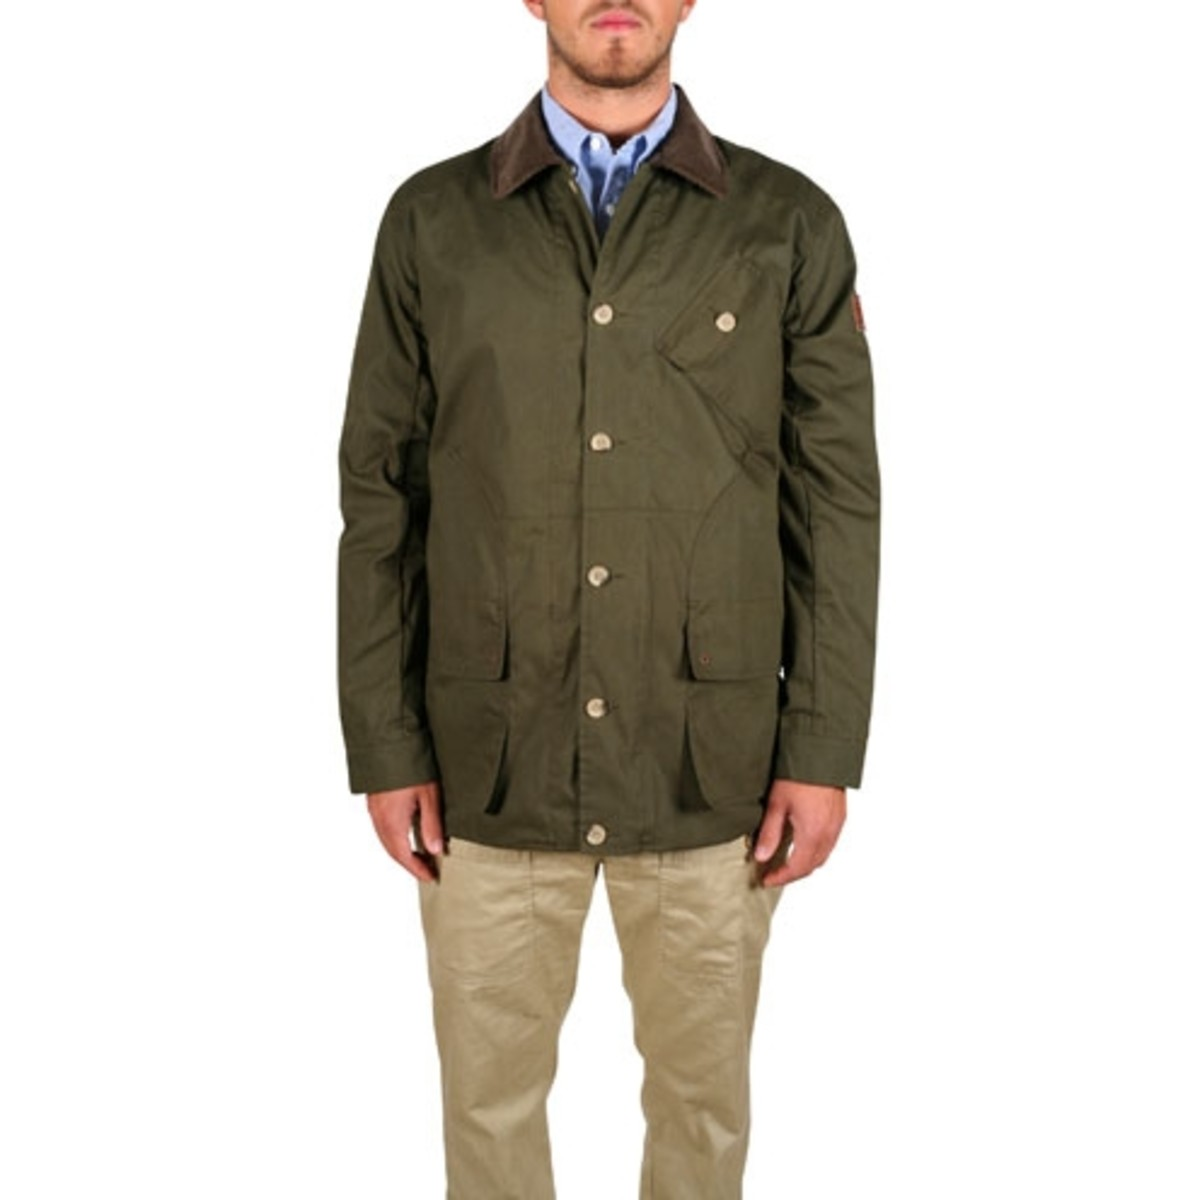 Penfield SS2011 Jackets